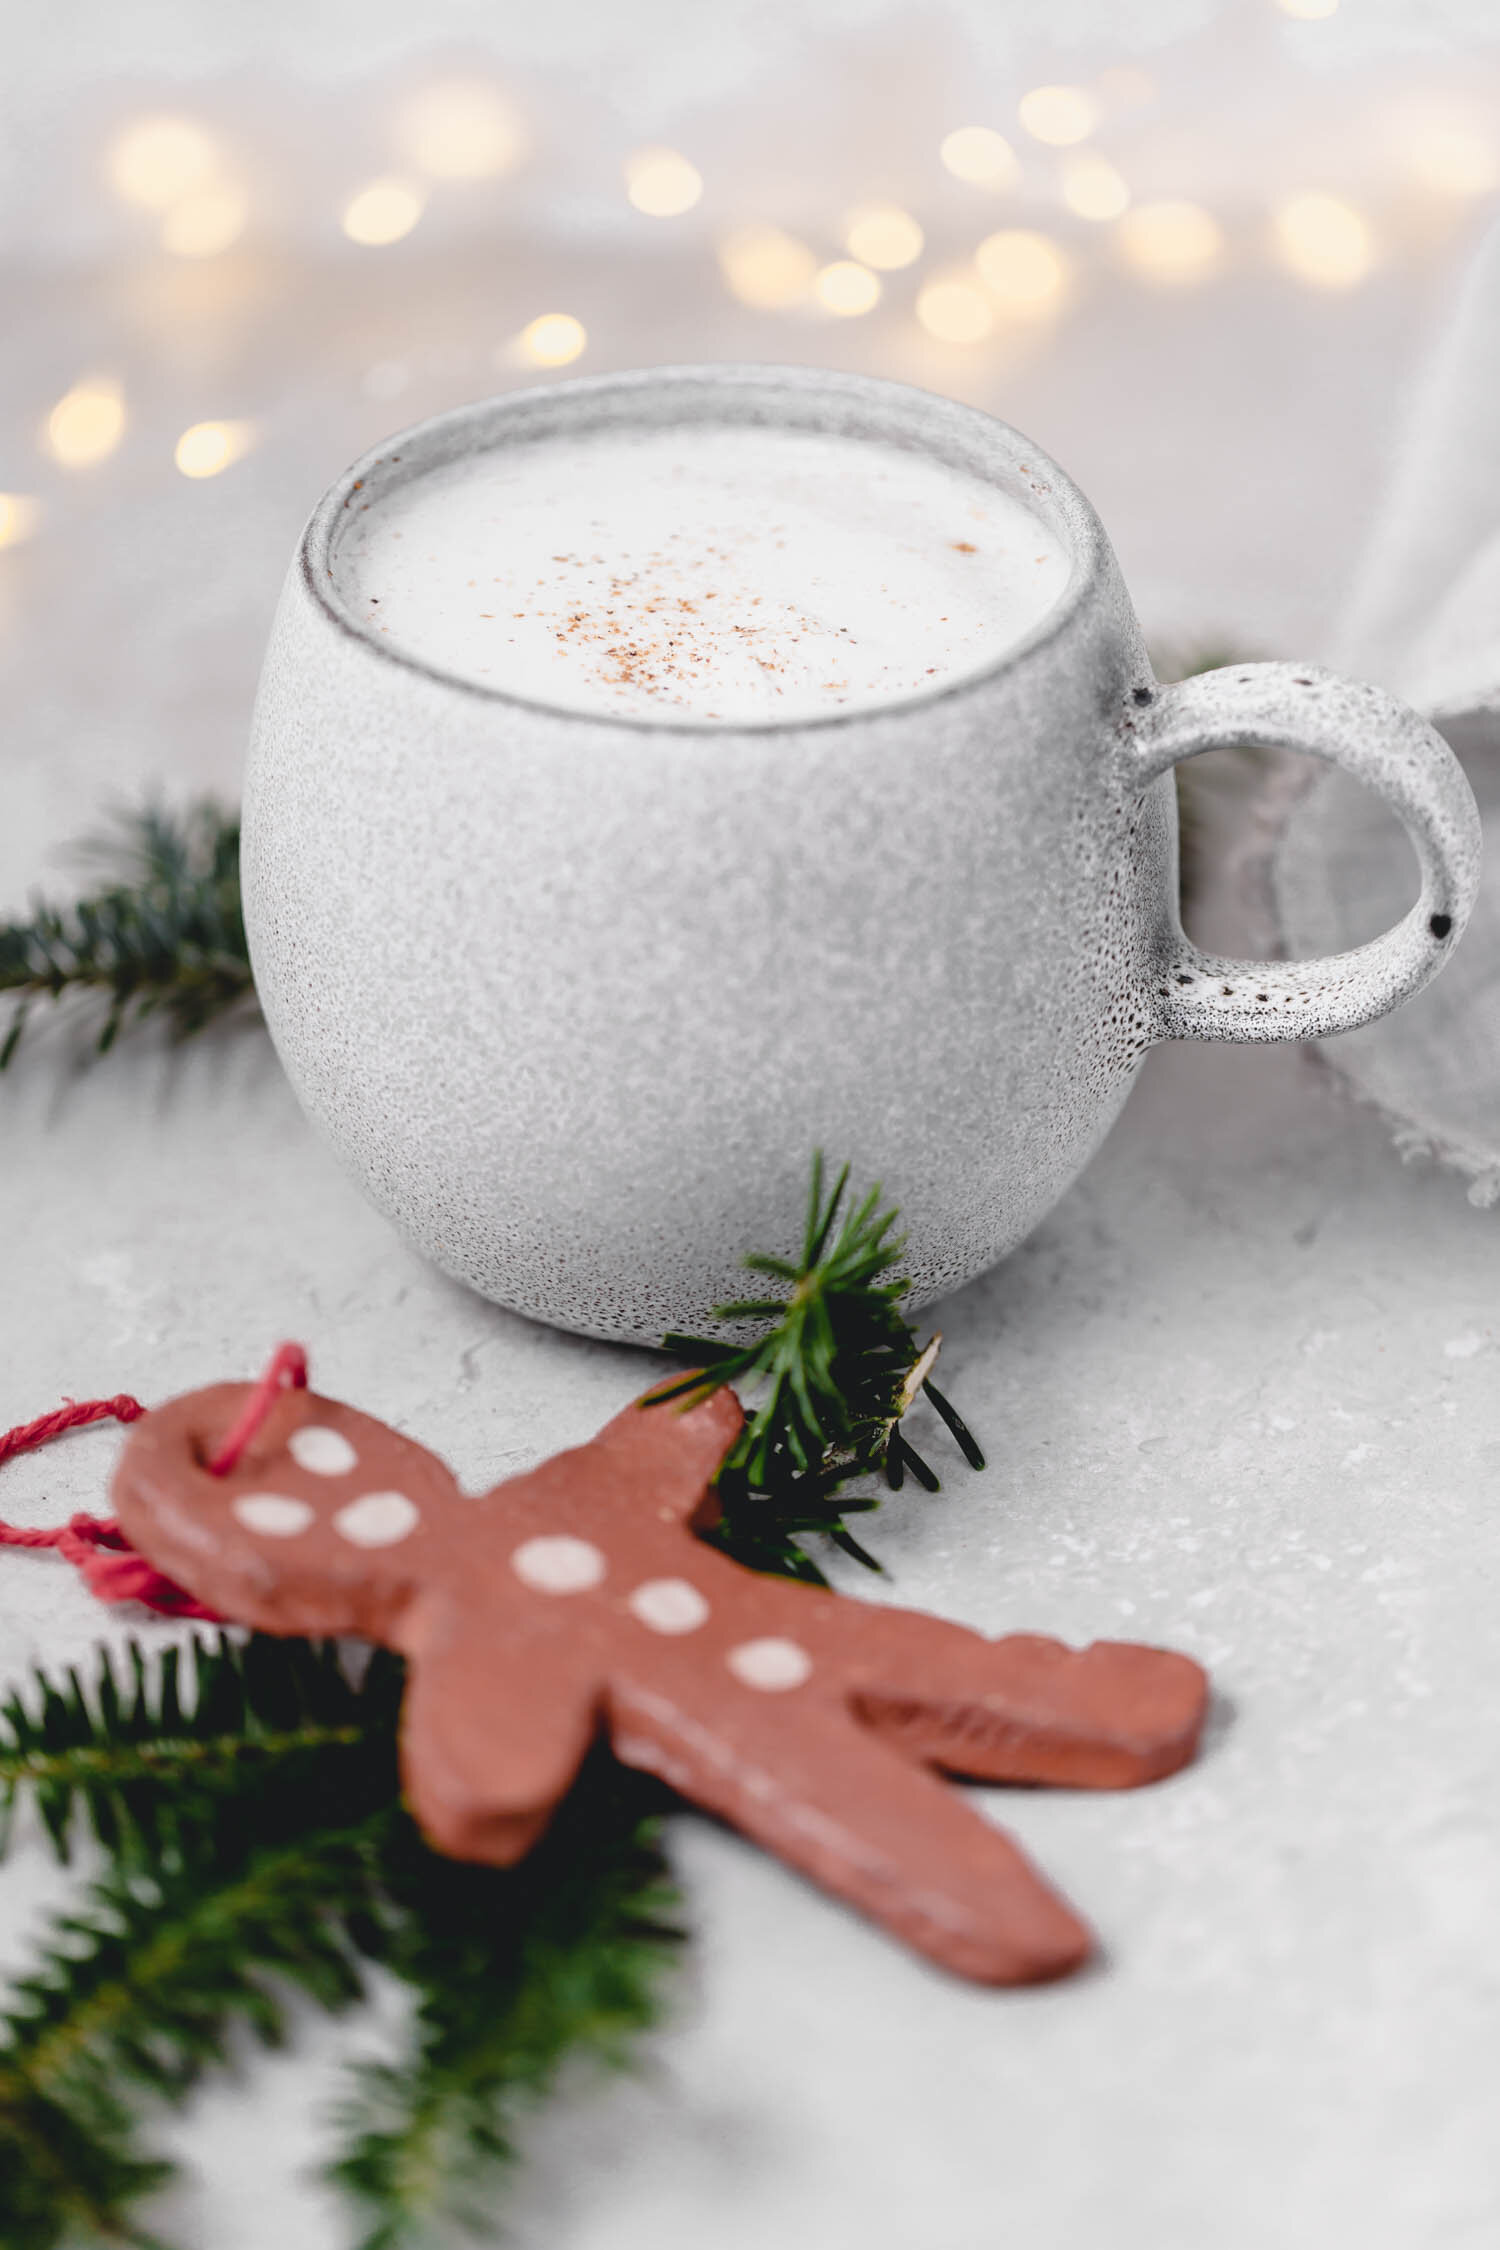 Vegan Eggnog in 10 Minutes - this recipe makes it easy to grab a cup of cheer right away!     #eggnog #vegan #veganholiday #Christmas #veganeggnog #cupofcheer #nutmeg #dairyfree #drink #bourbon #quickandeasy #10minuterecipe #hotdrink #eggfree #holidaytreat #veganchristmas #nog #dairyfreeeggnog #holidayrecipe